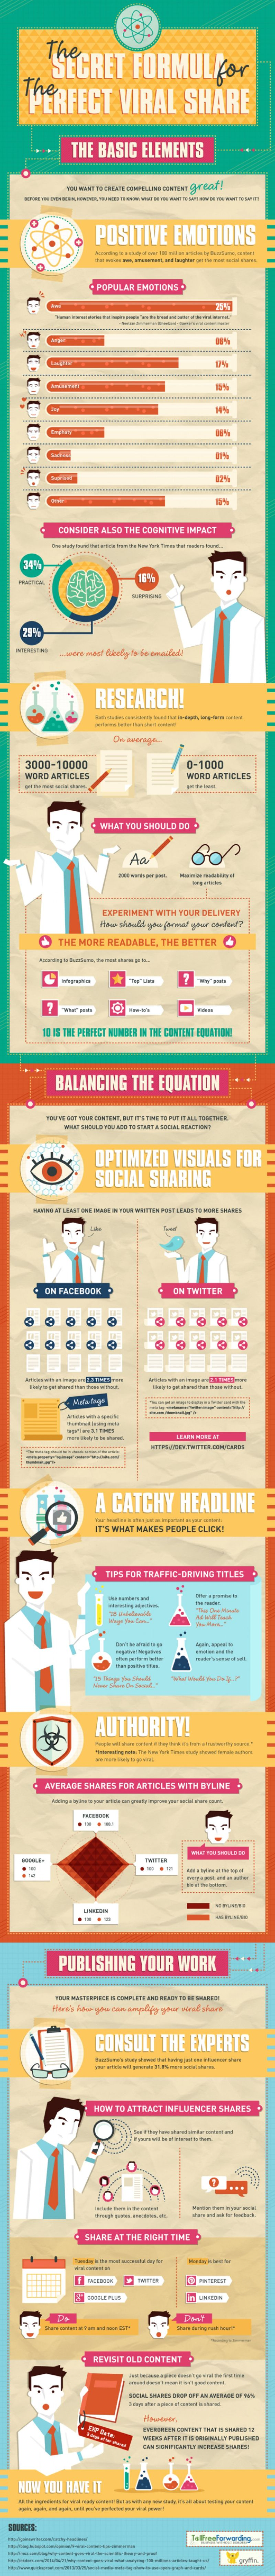 How to Get More Shares on Facebook and Twitter